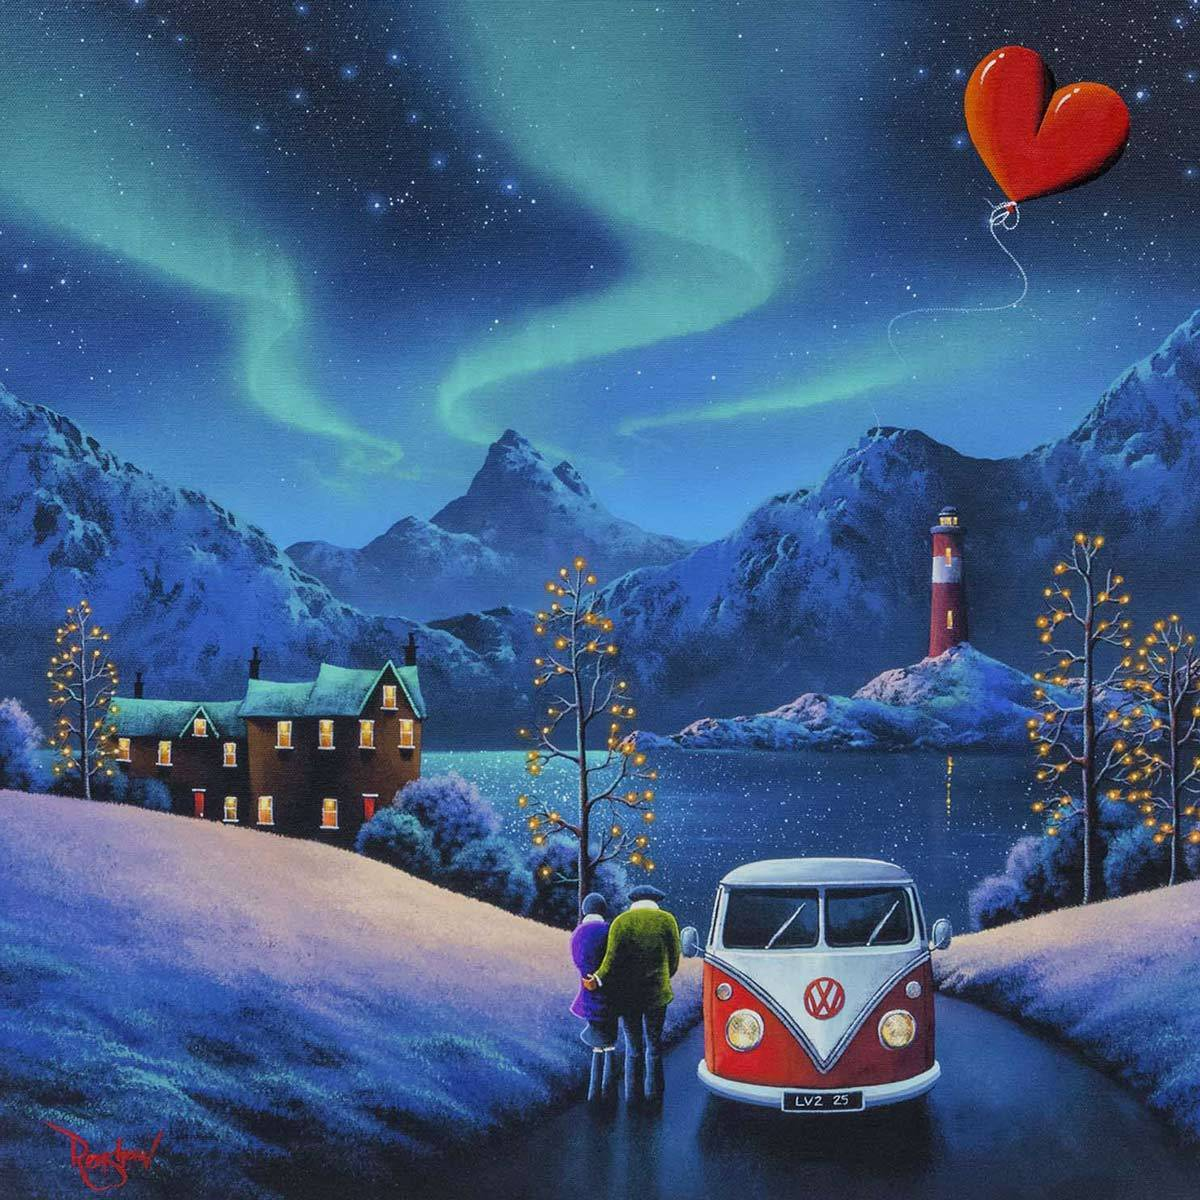 Lights and Dreams - LAST EDITION David Renshaw Edition 2